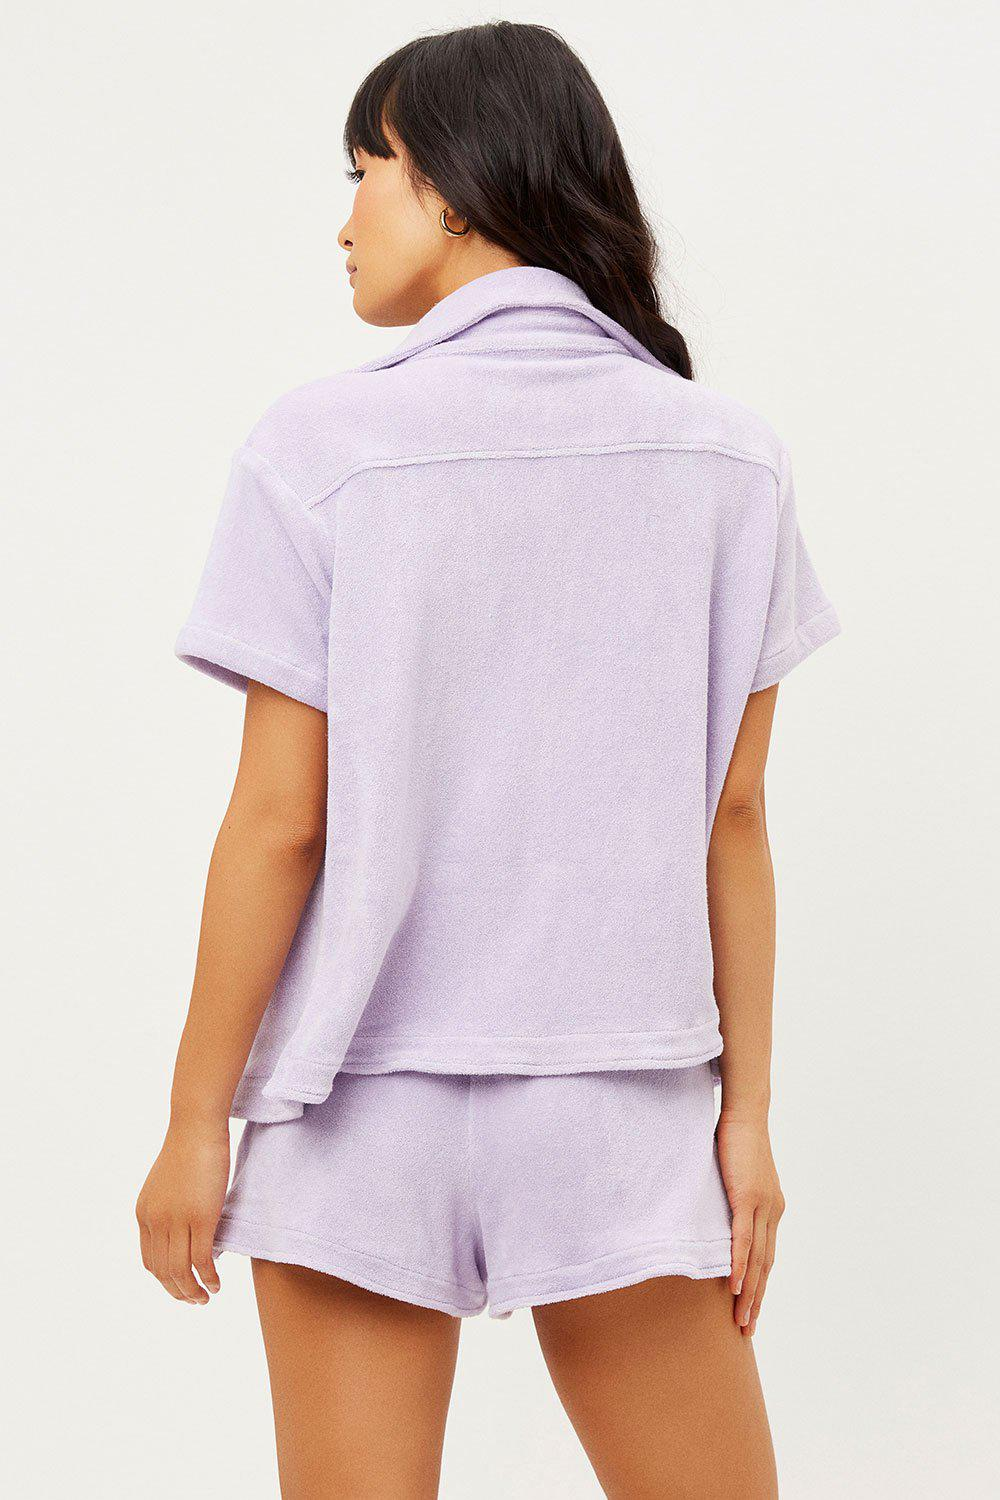 Coco Terry Button Up Shirt - Lilac 1